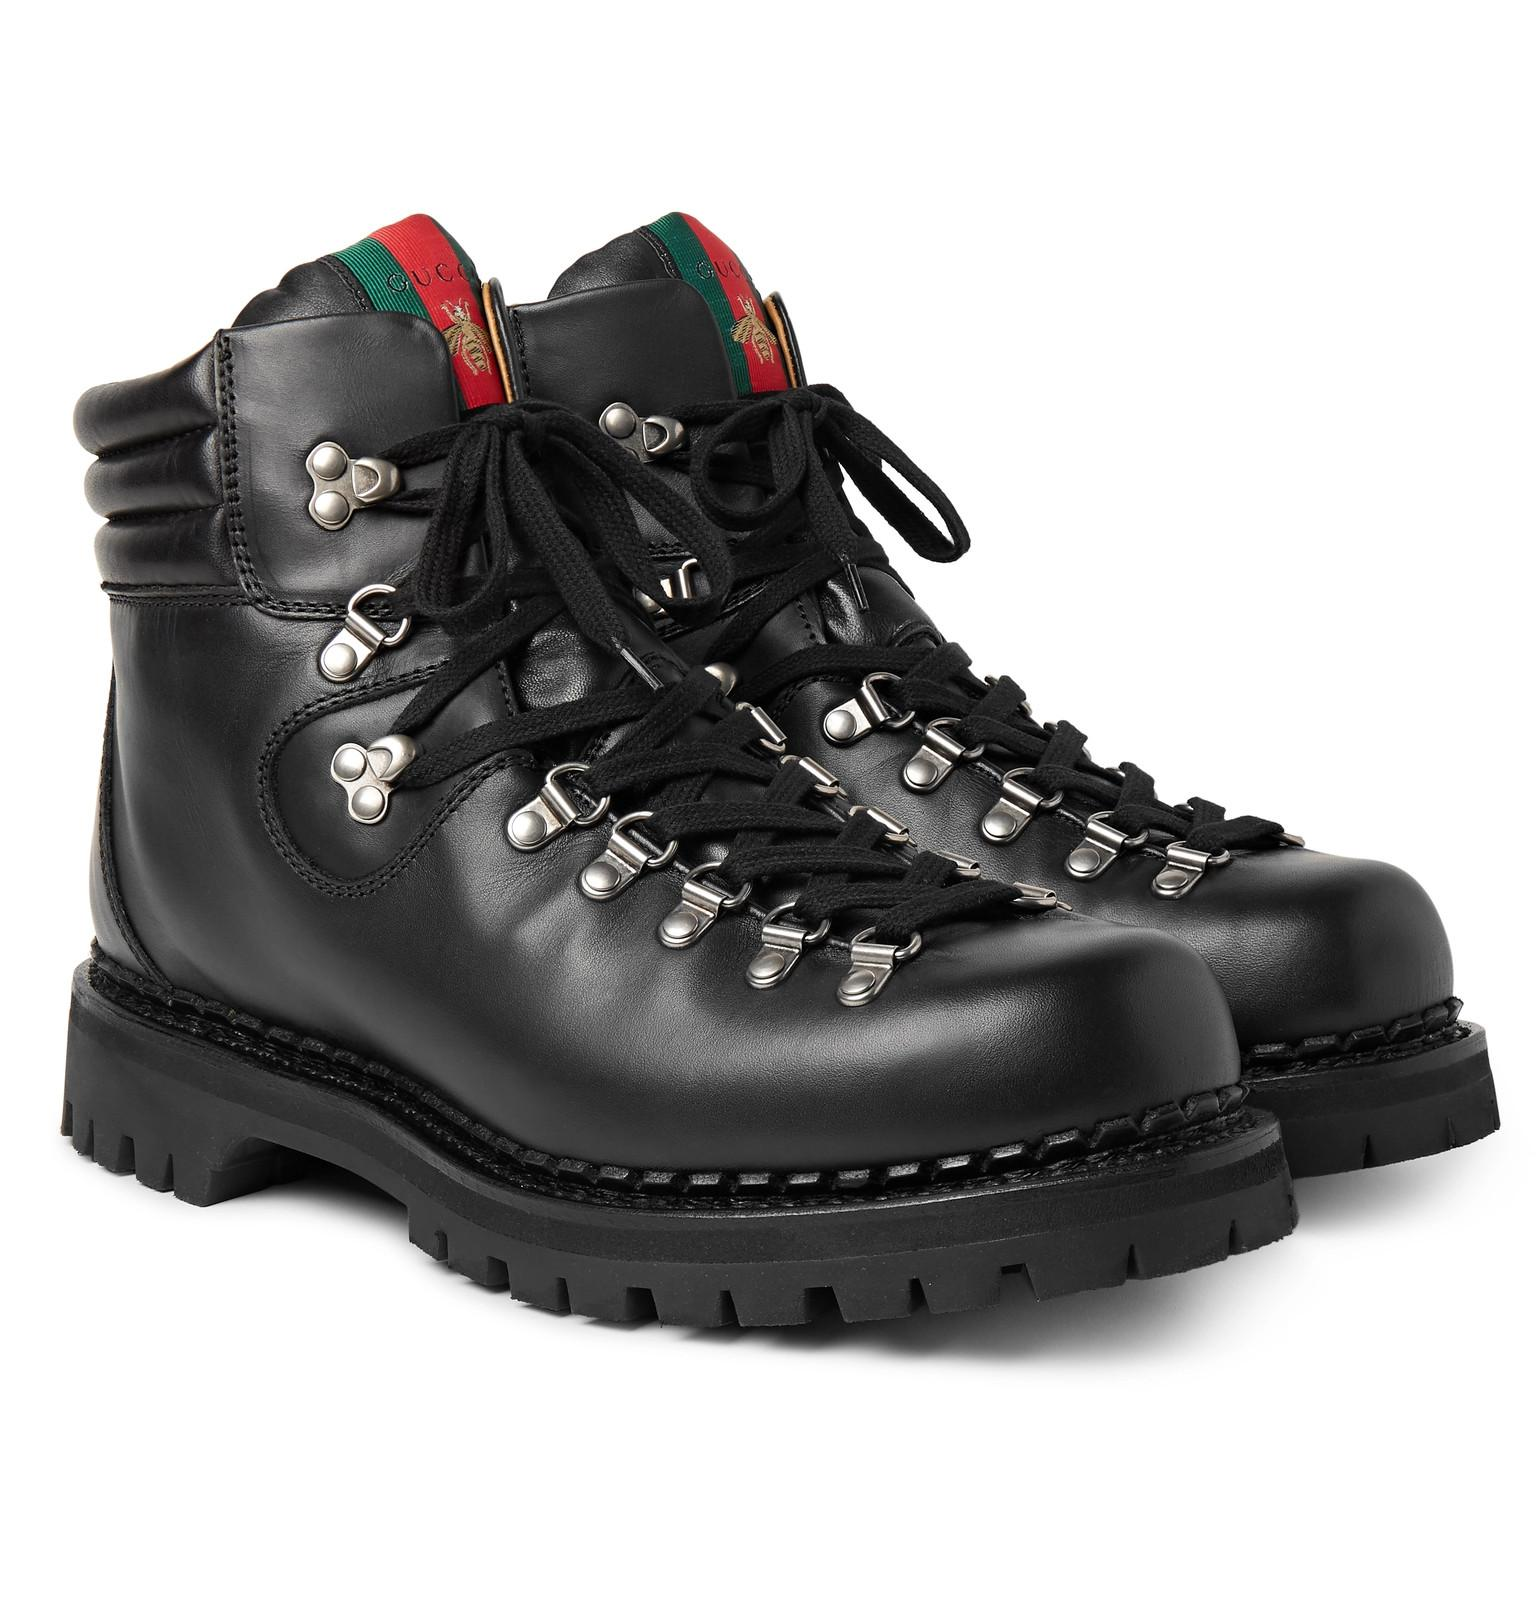 a0cc2ec4e435 Gucci Tracker Leather Boots in Black for Men - Lyst